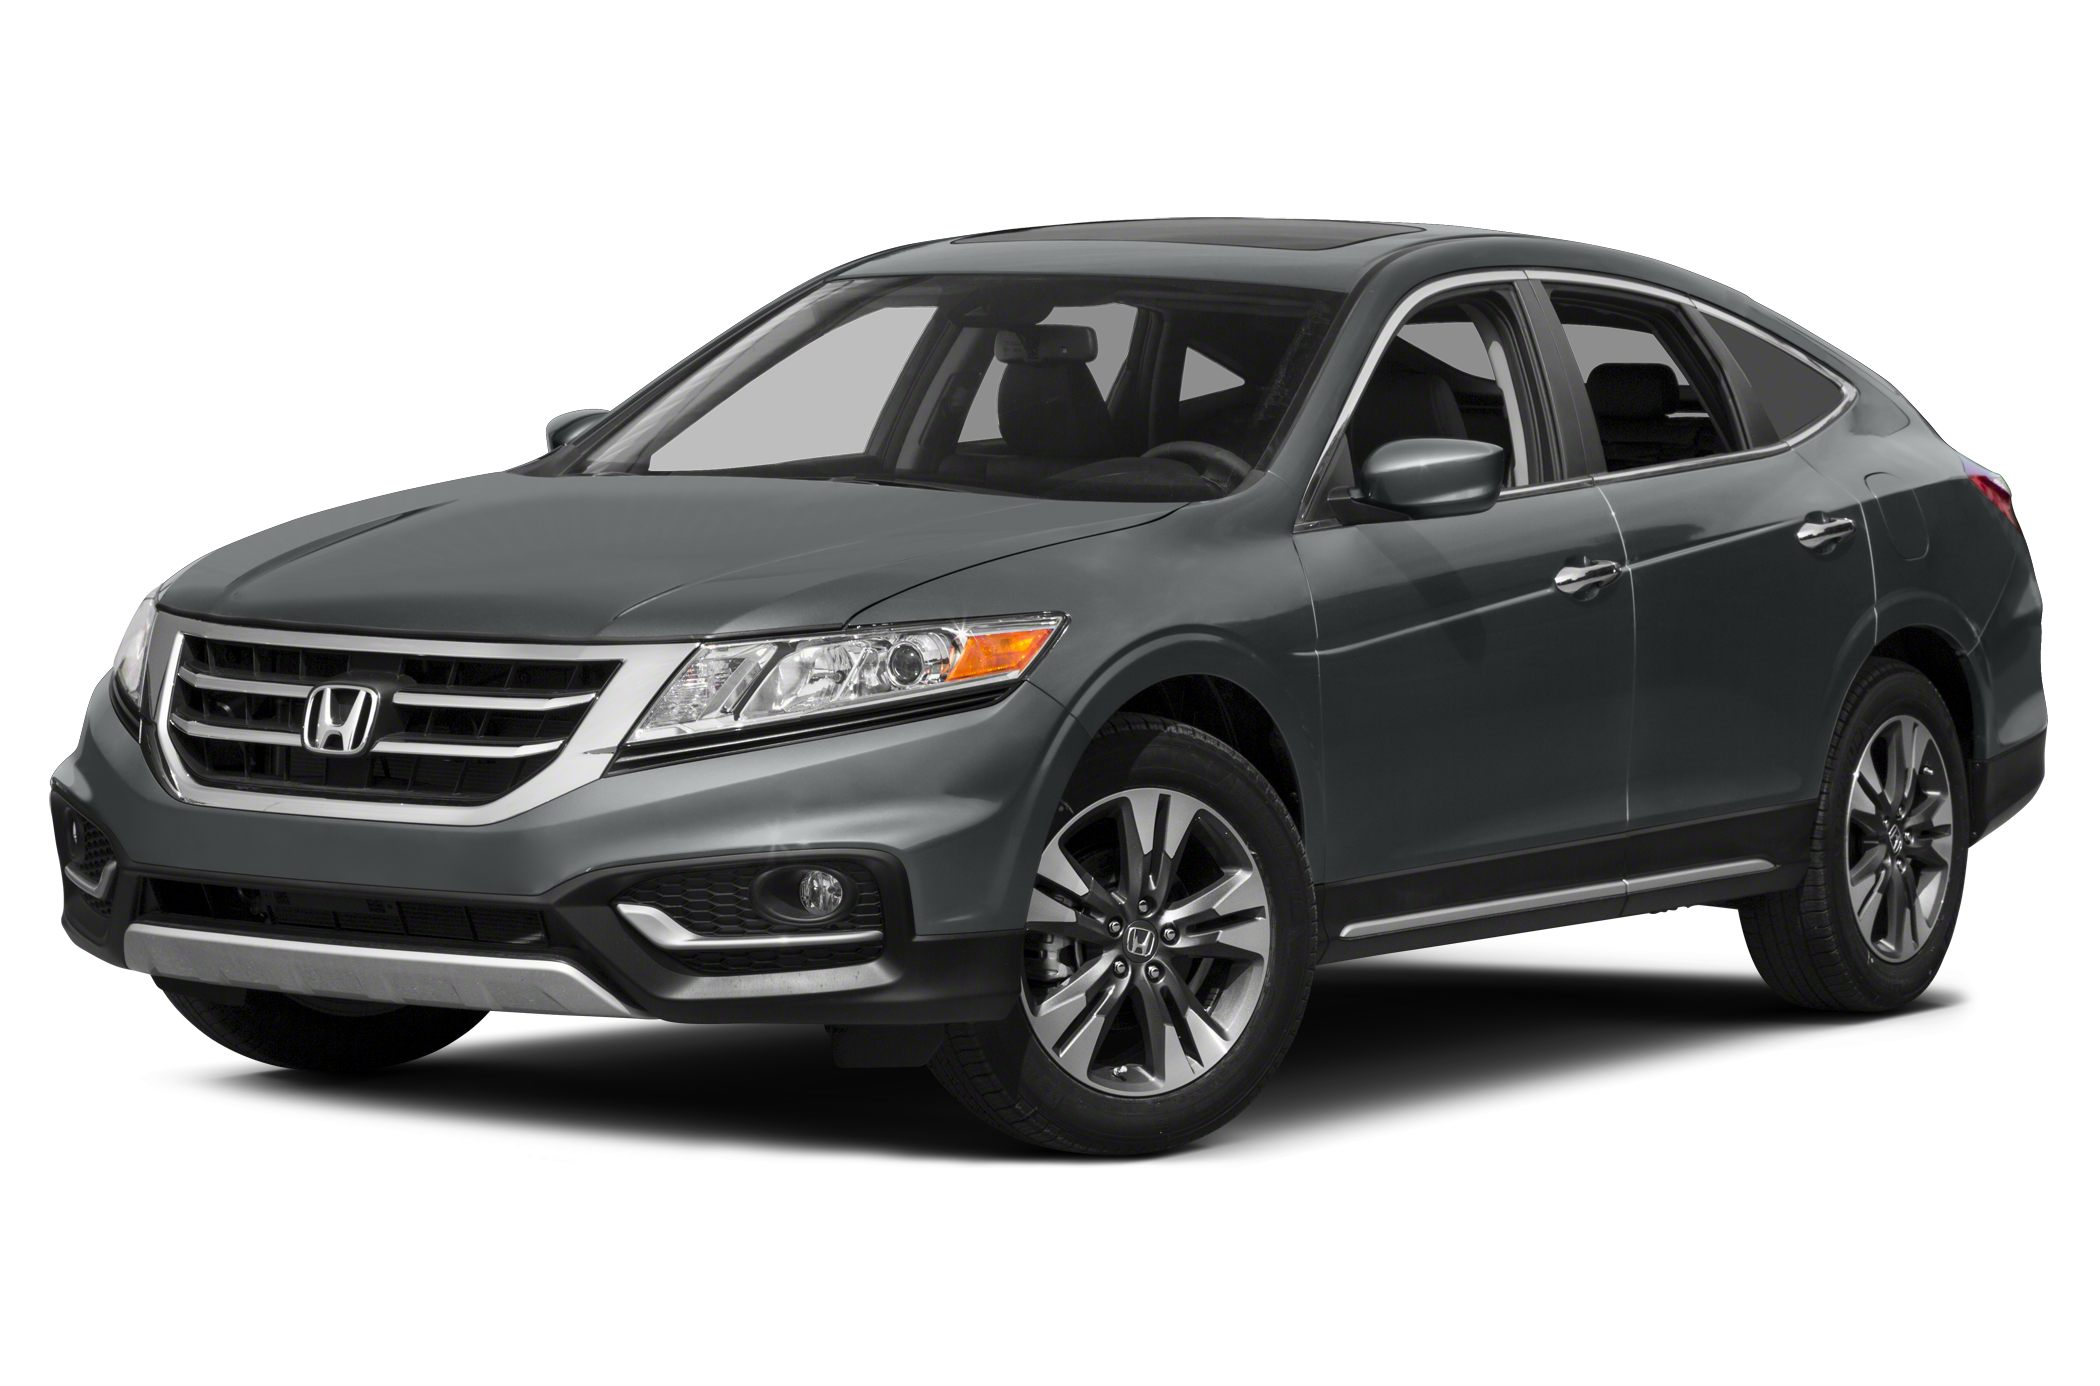 2015 Honda Crosstour EX-L Wagon for sale in Alhambra for $32,095 with 9 miles.